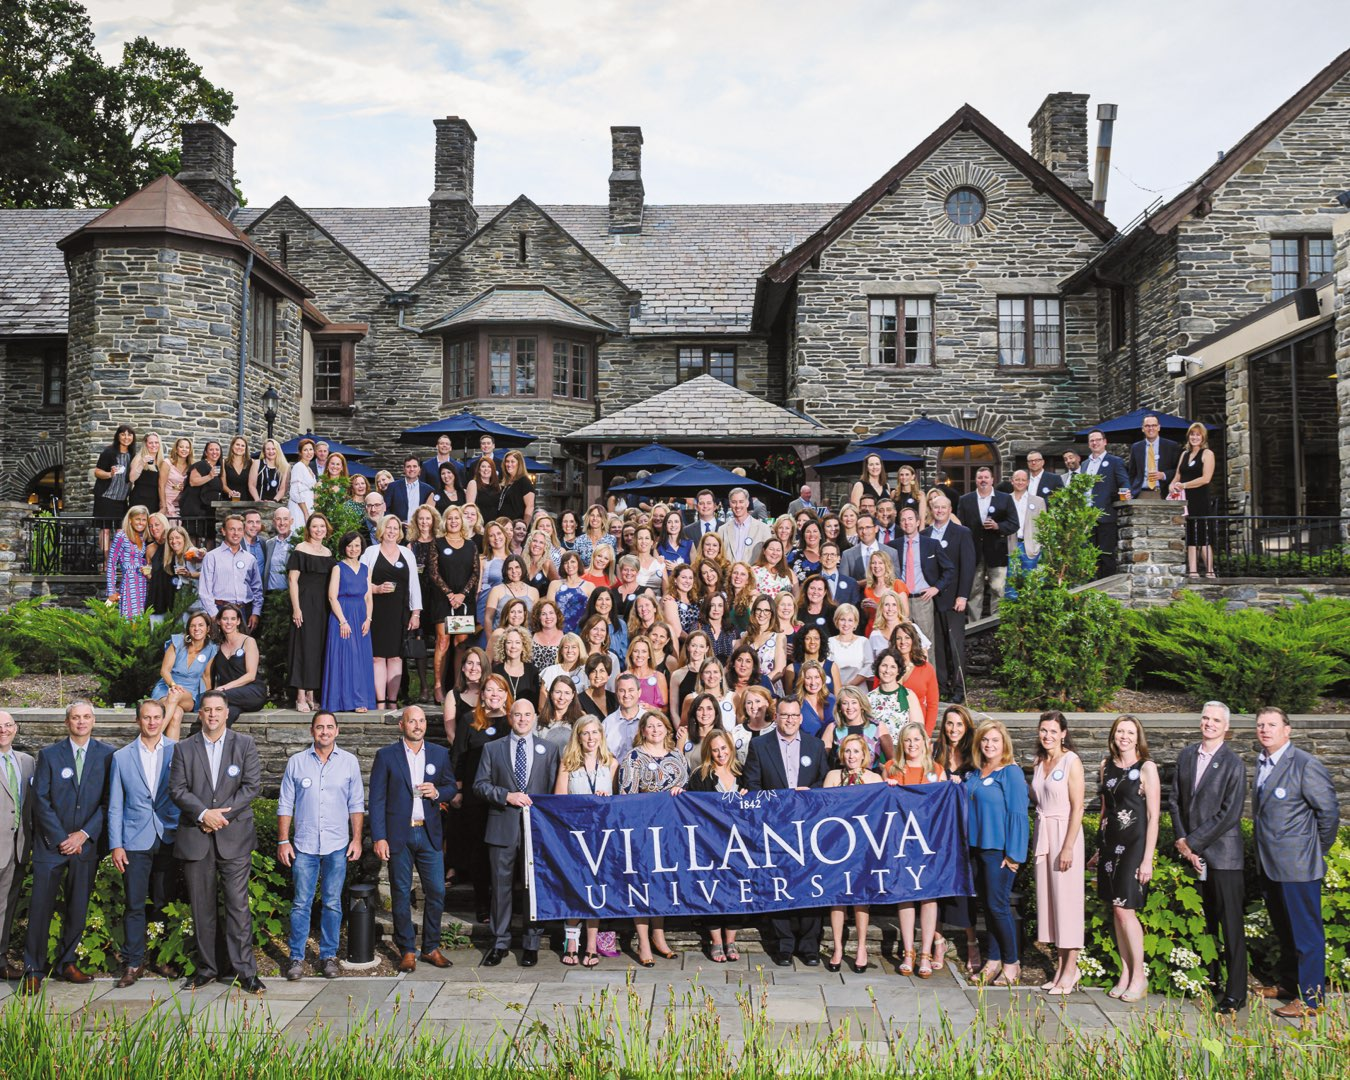 More than 100 alumni on the outdoor stone patio of the Inn at Villanova